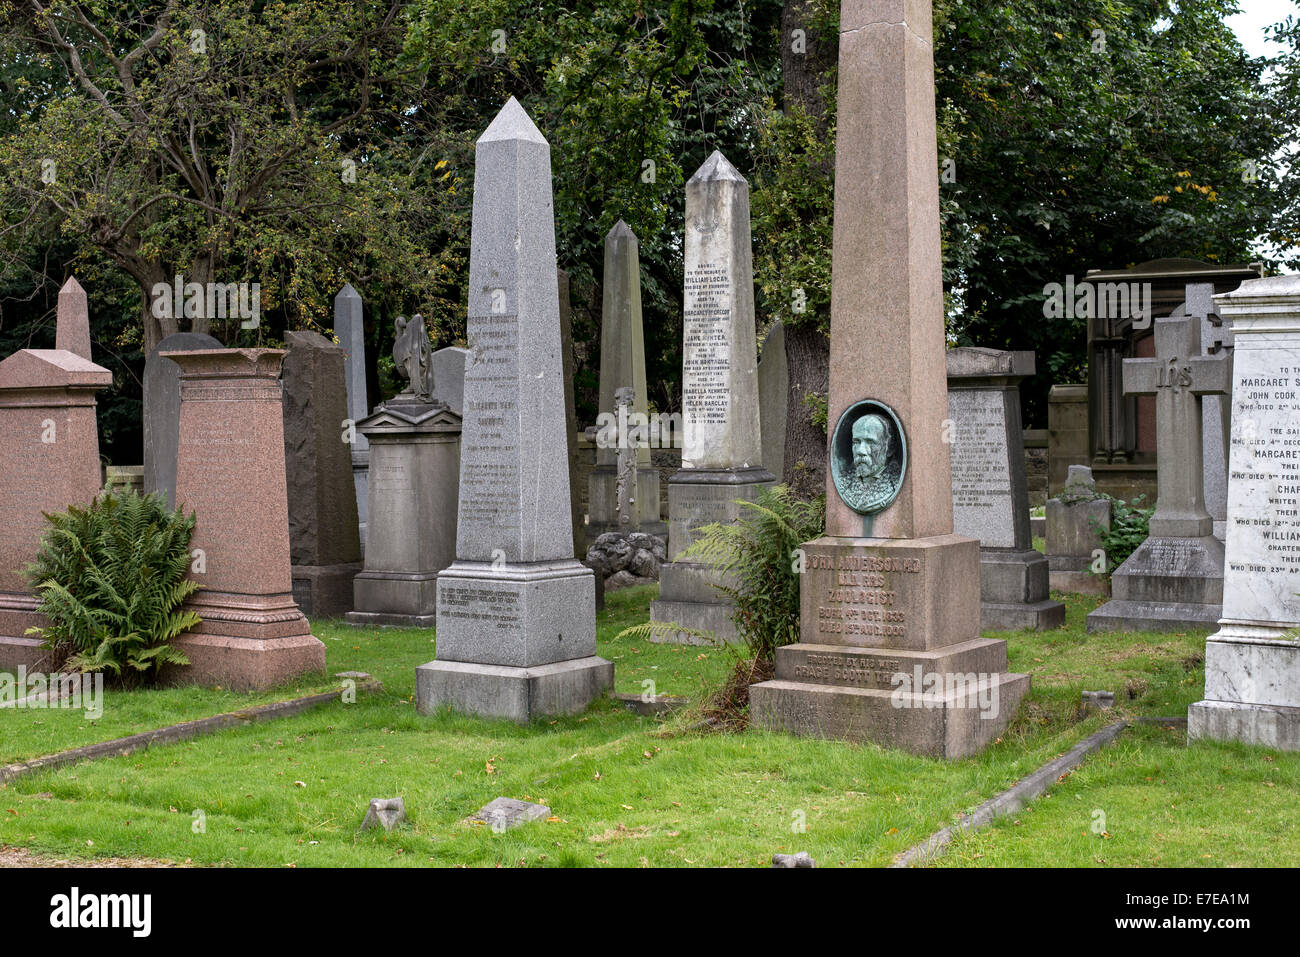 A selection of memorials in the Dean Cemetery including that of John Anderson (1833-1900) anatomist and zoologist. - Stock Image